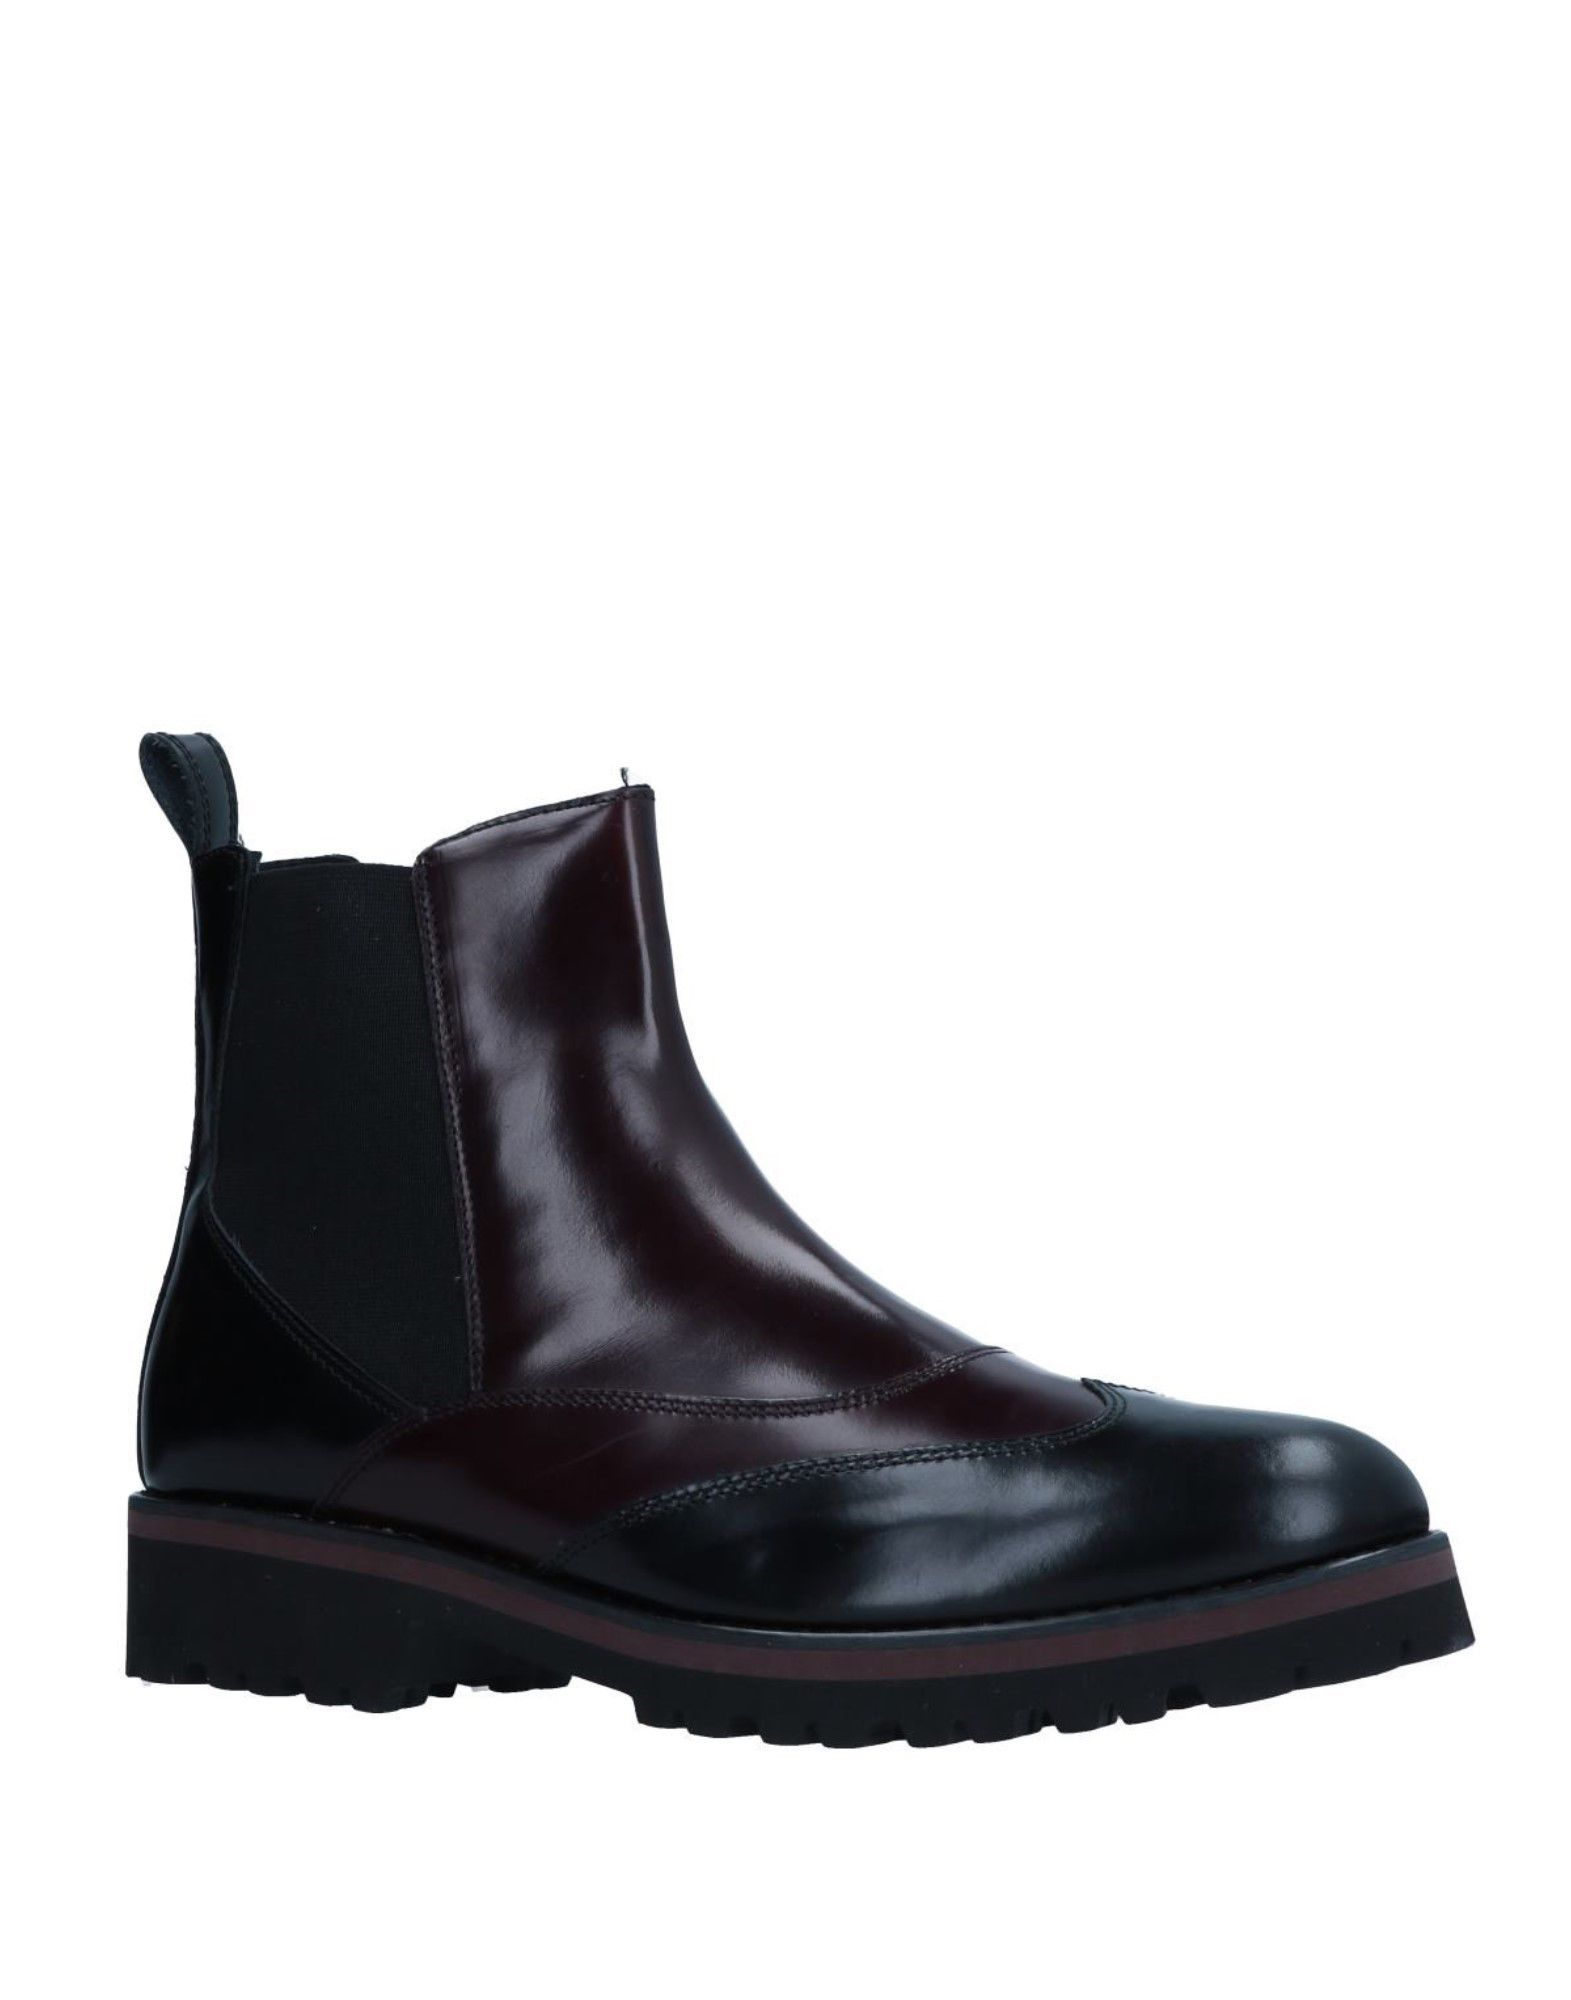 Soldini Ankle Boot - Women Soldini Ankle Boots Boots Boots online on  United Kingdom - 11543806CA 1d8397